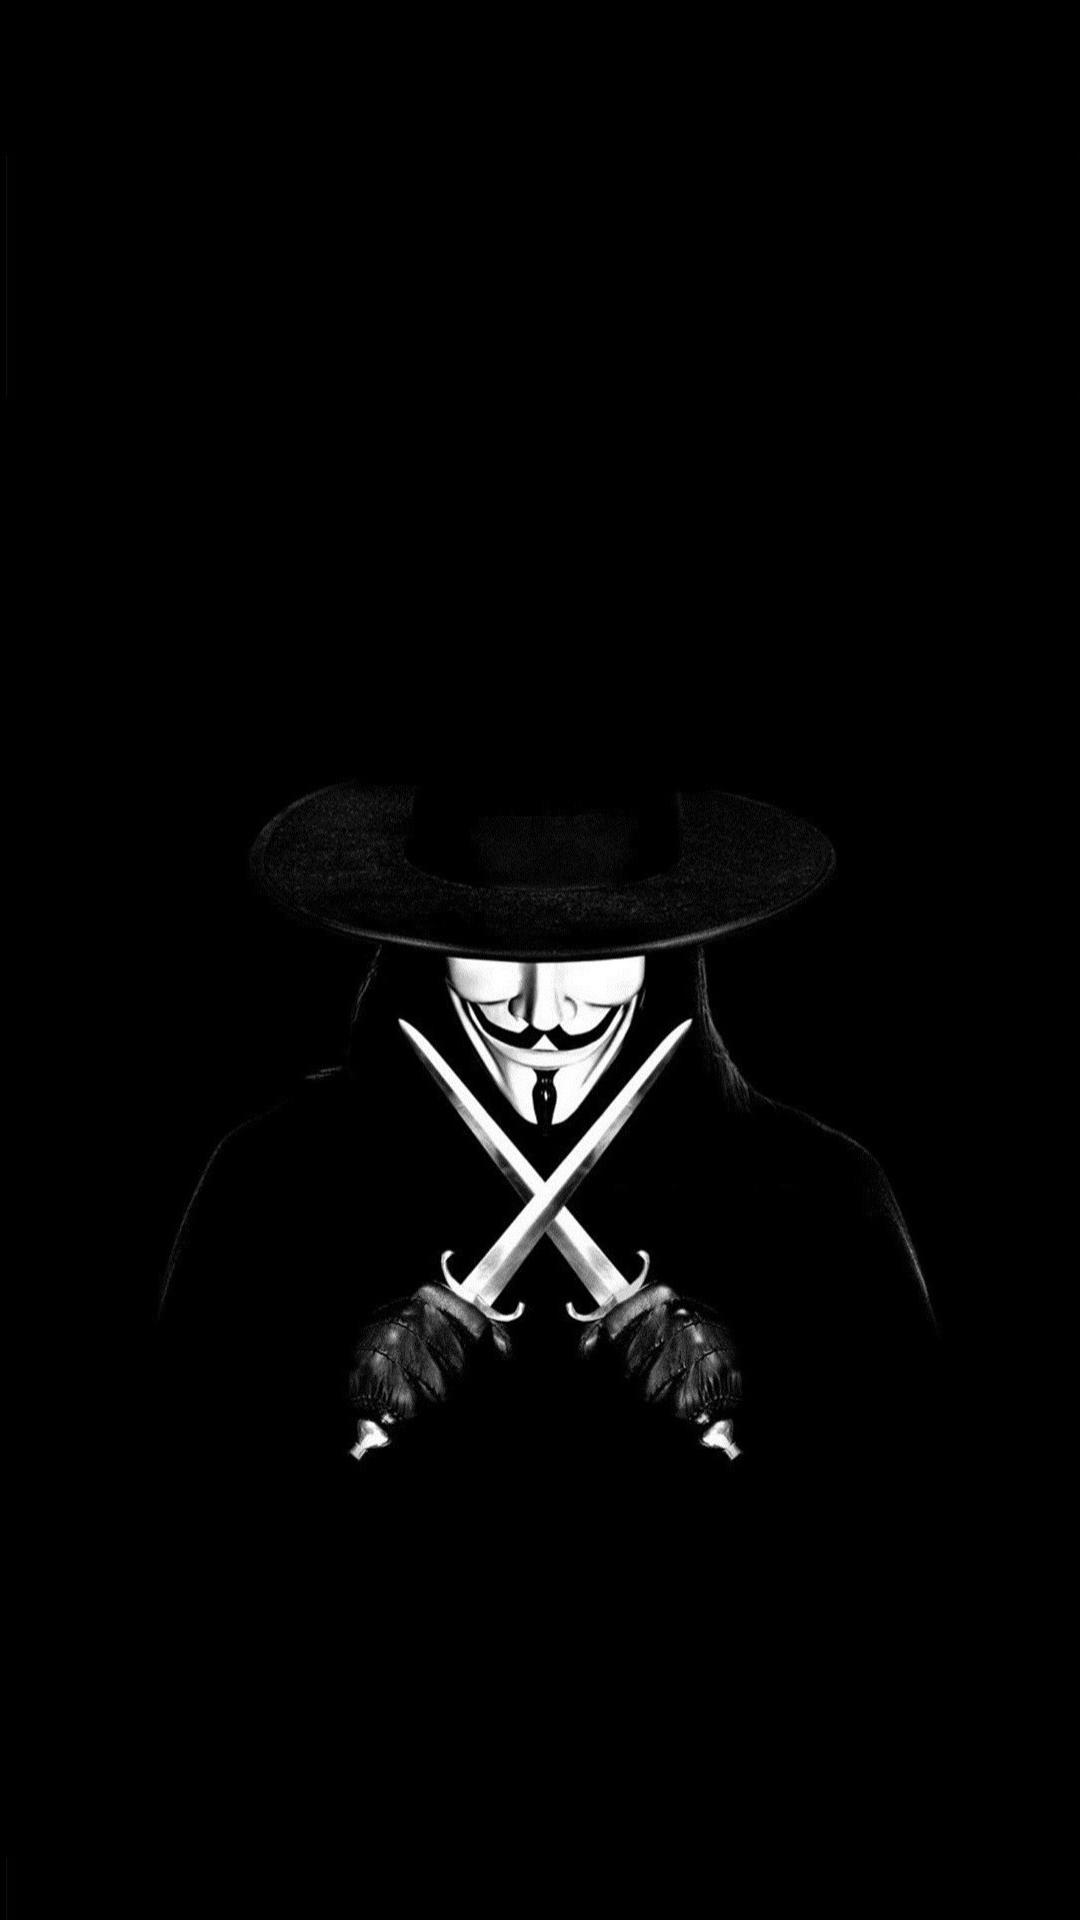 Anonymous Hacker Wallpaper Quotes Anonymous Wallpaper Hd For Iphone Pixelstalk Net